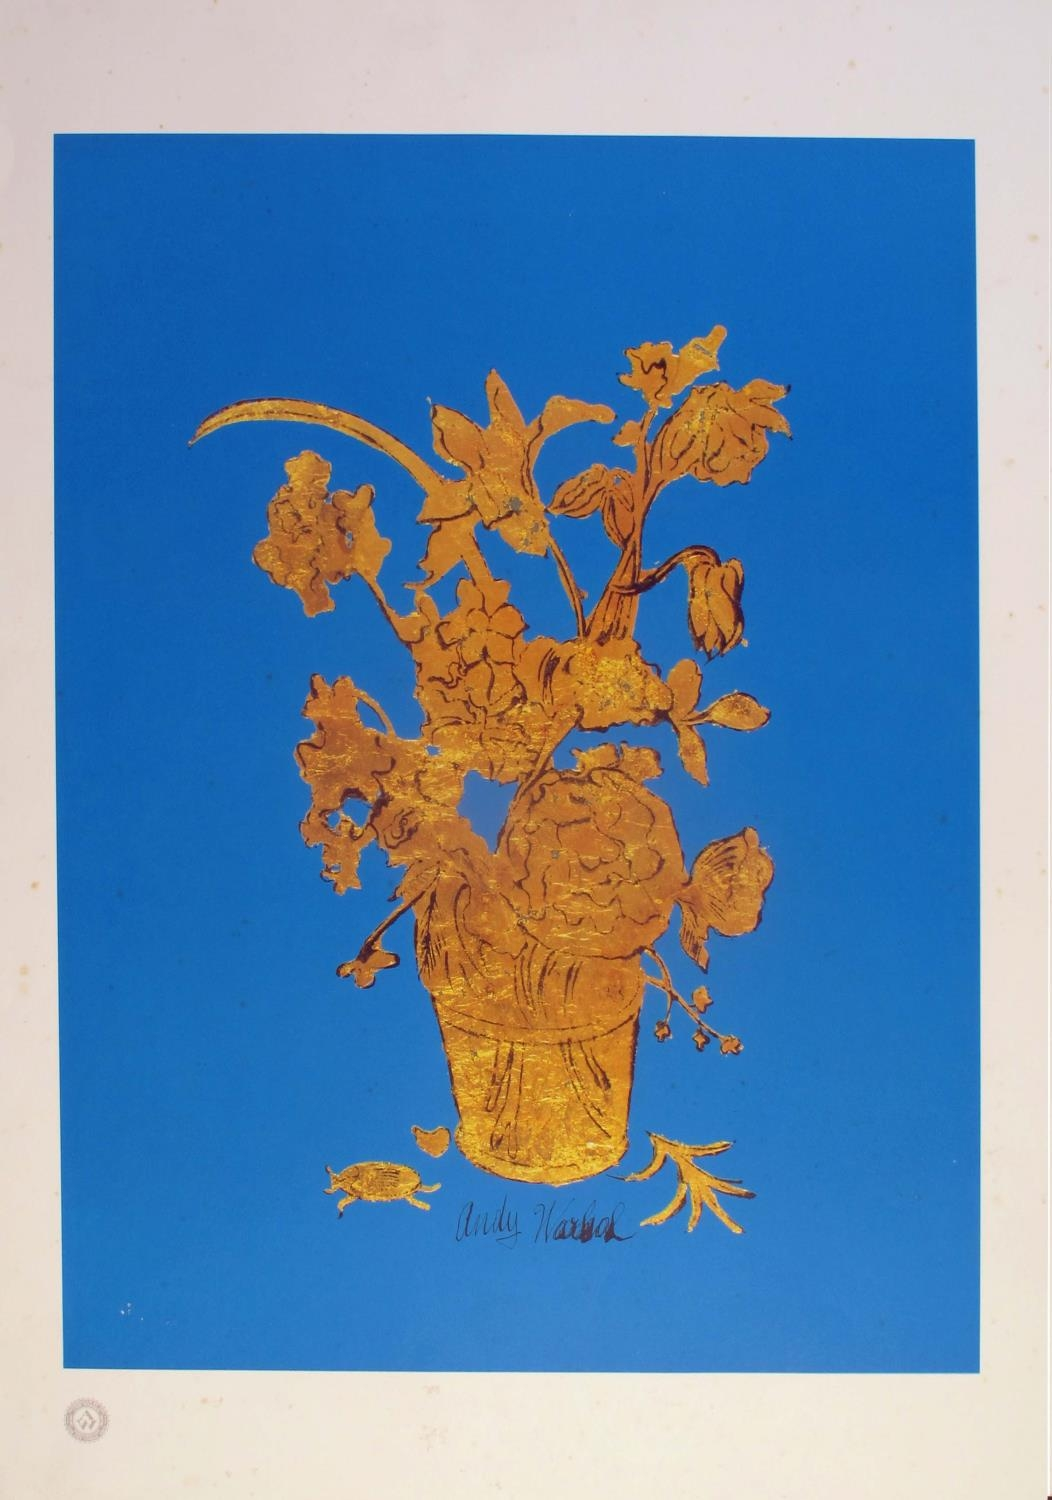 Andy Warhol and a collection of 12 1980s and 1990s advertising and decorative posters. A